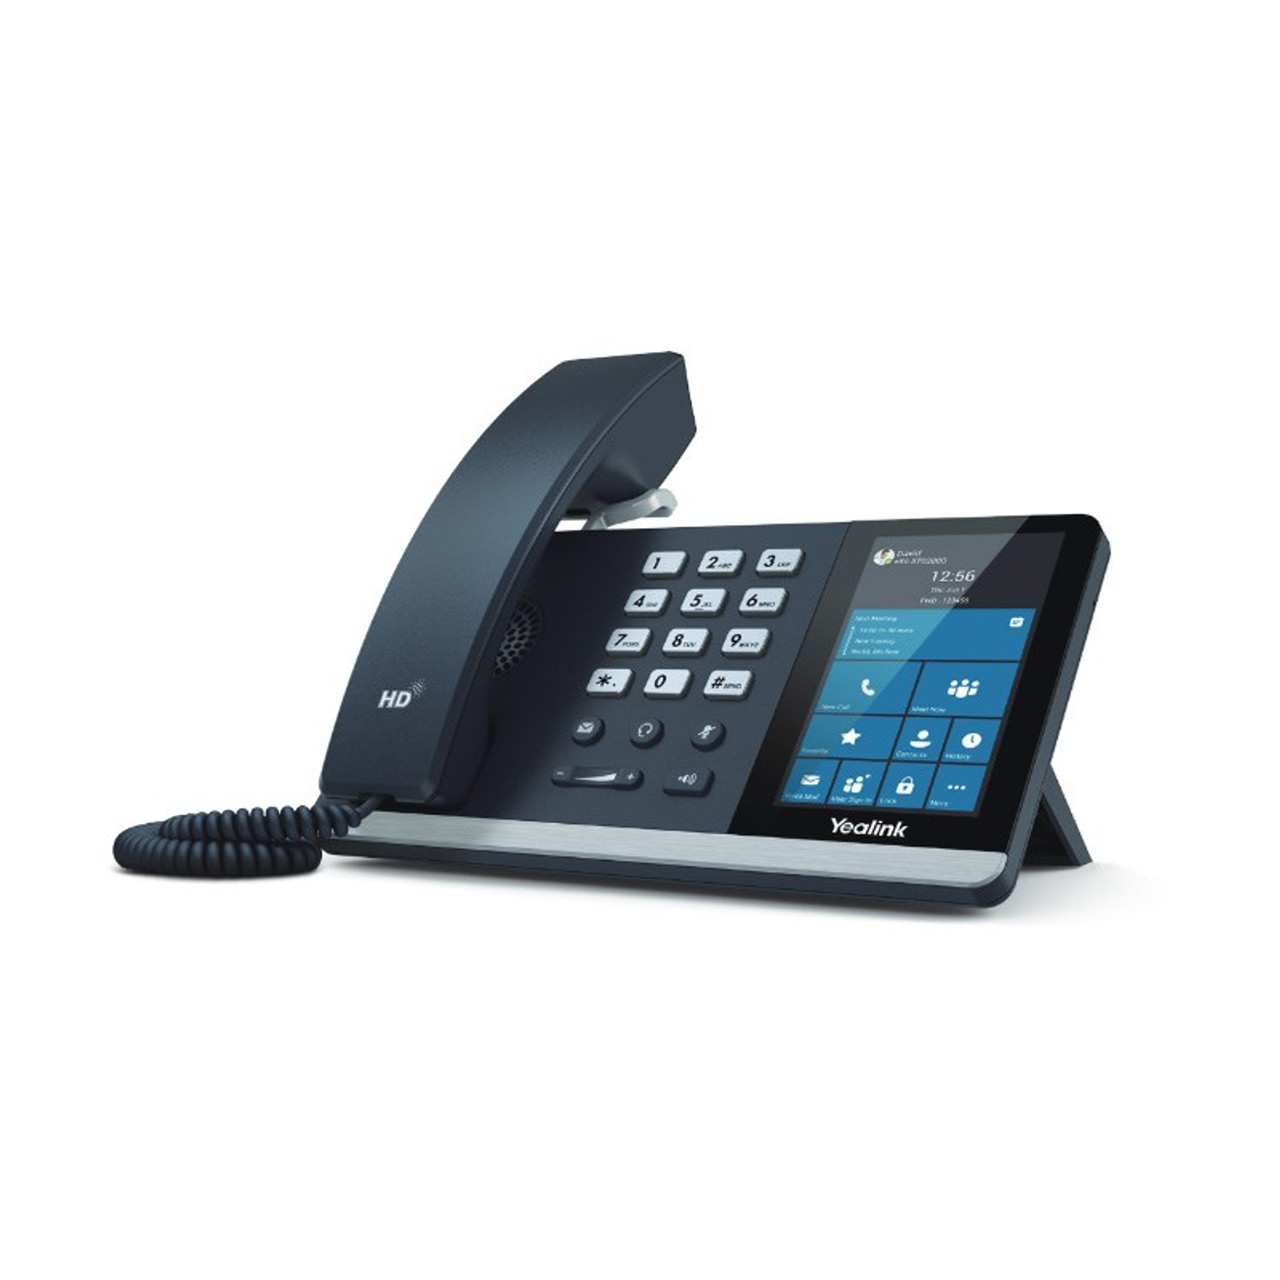 Product image for Yealink T55A-SFB HD Android Smart Business Phone - Skype For Business Edition  | CX Computer Superstore